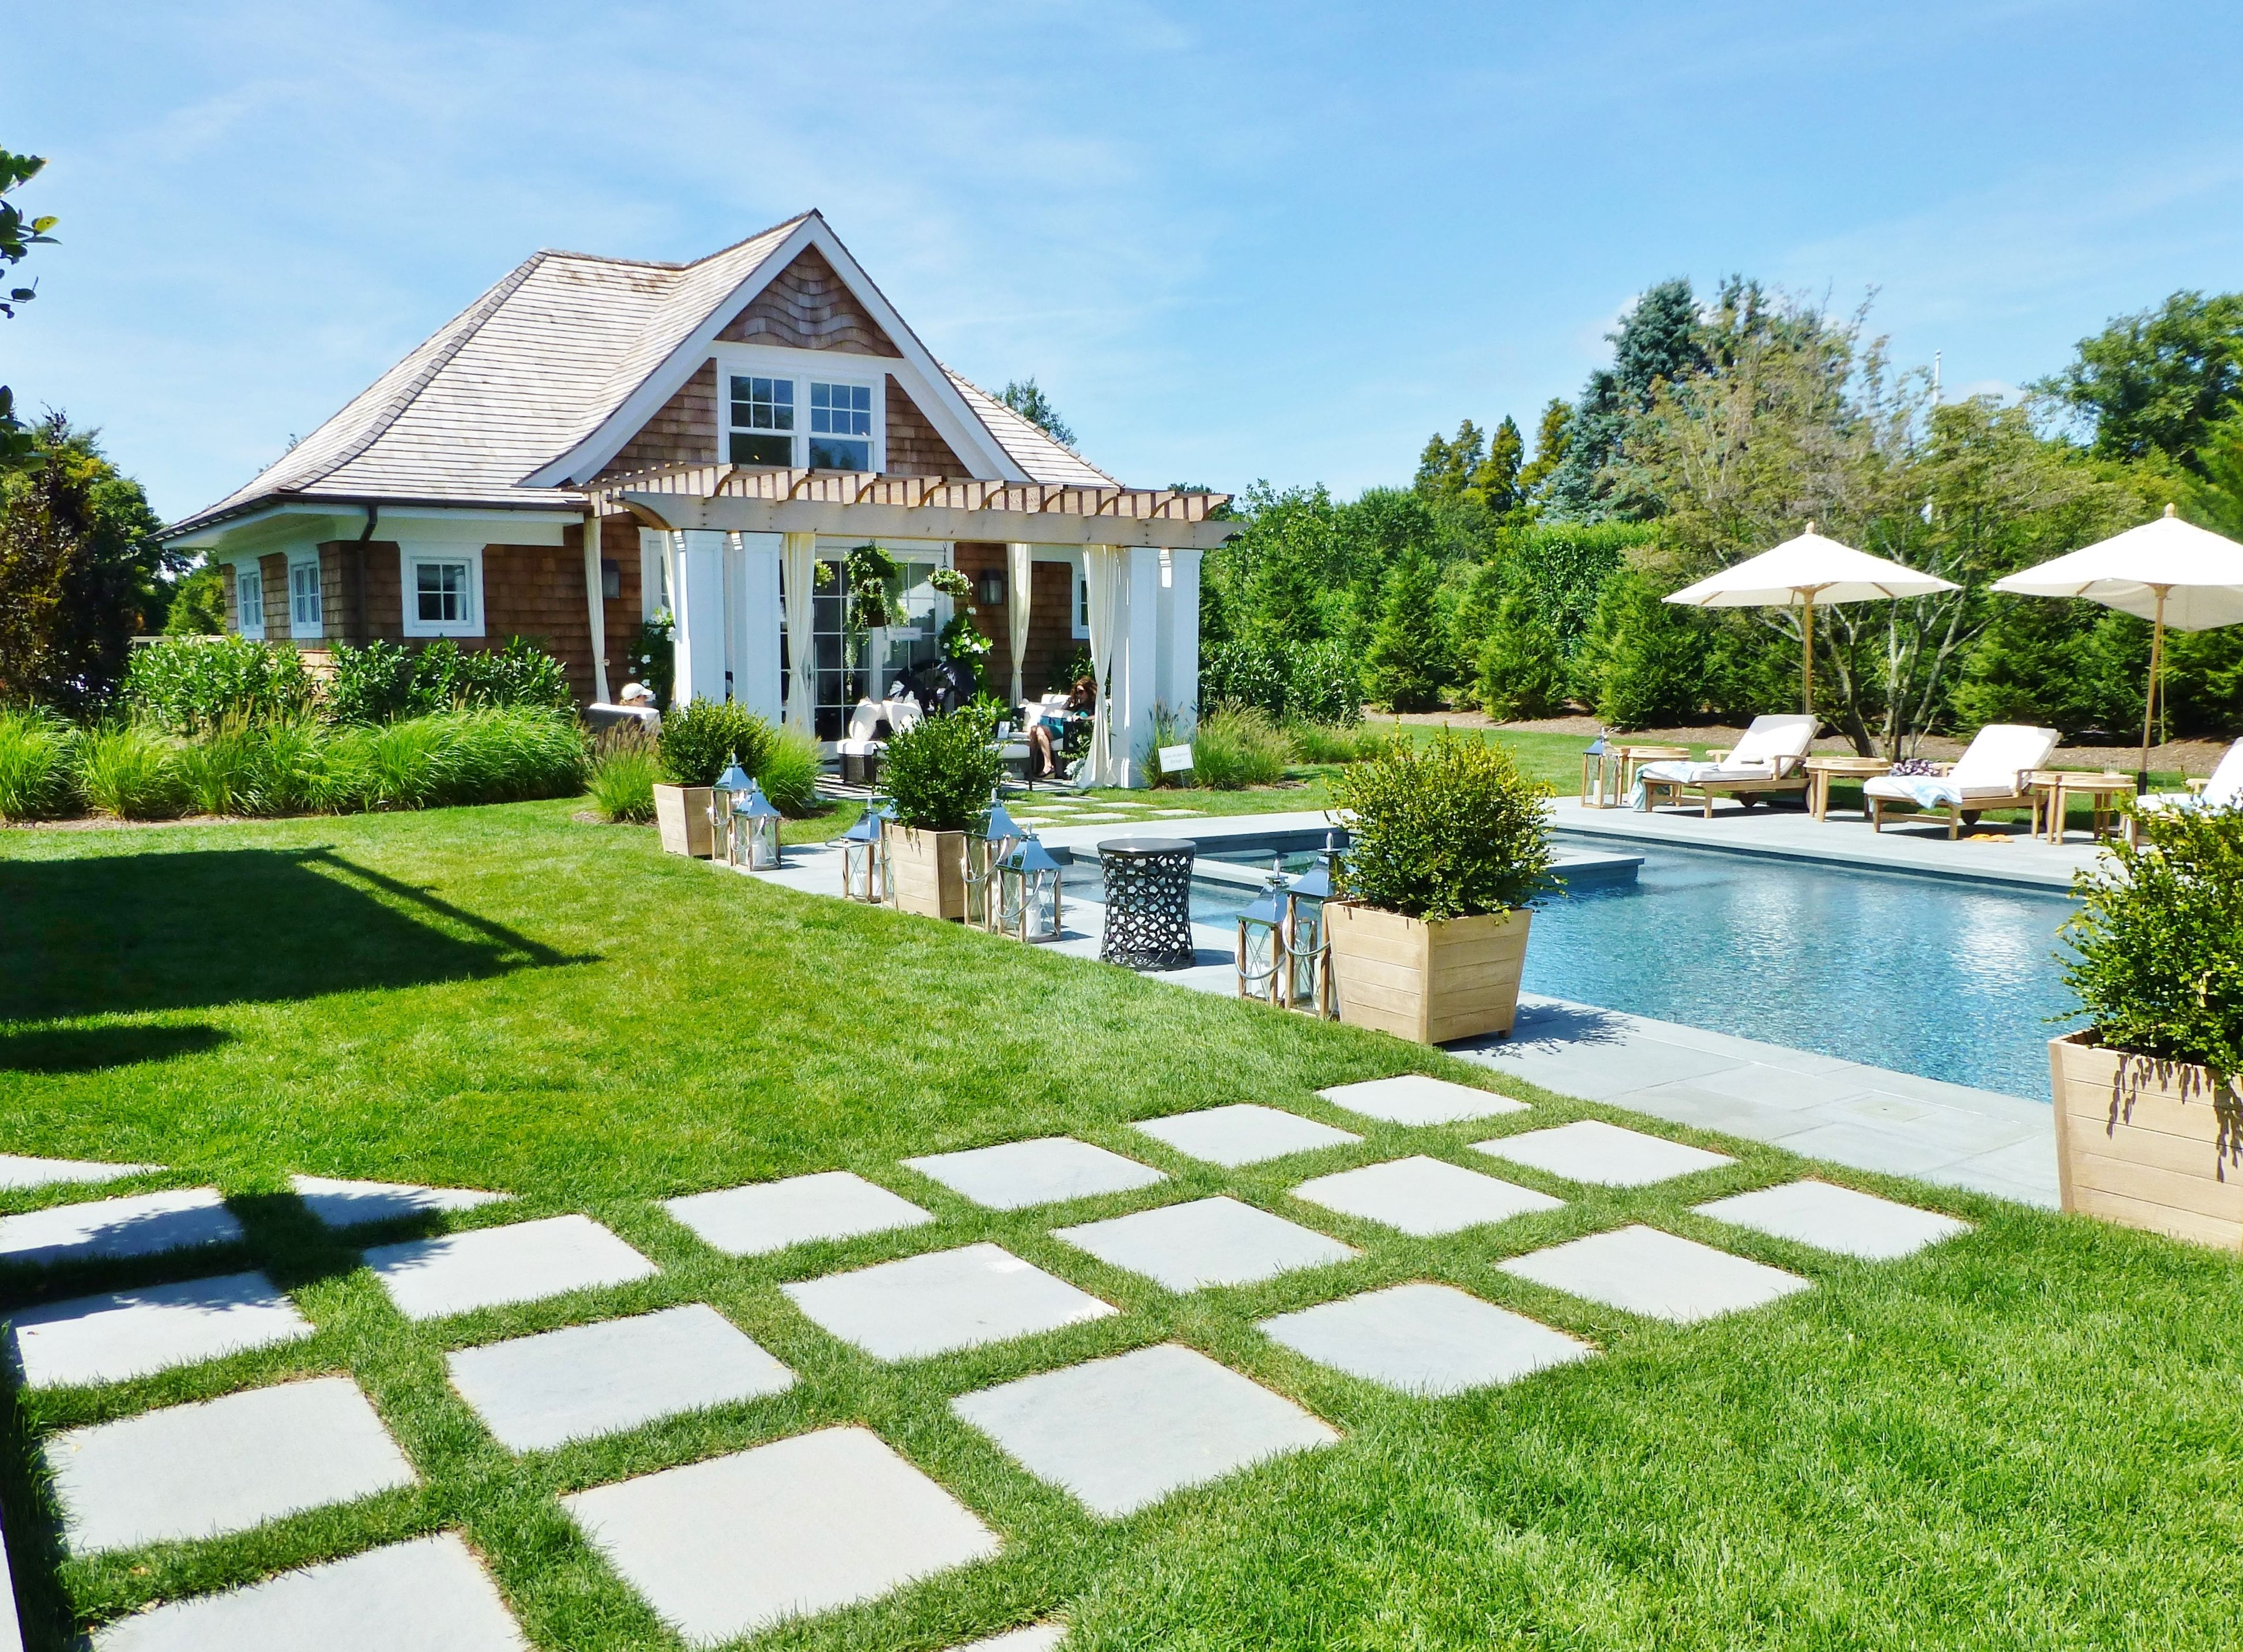 The 2014 Hampton Designer Showhouse: The Outdoor Living Spaces